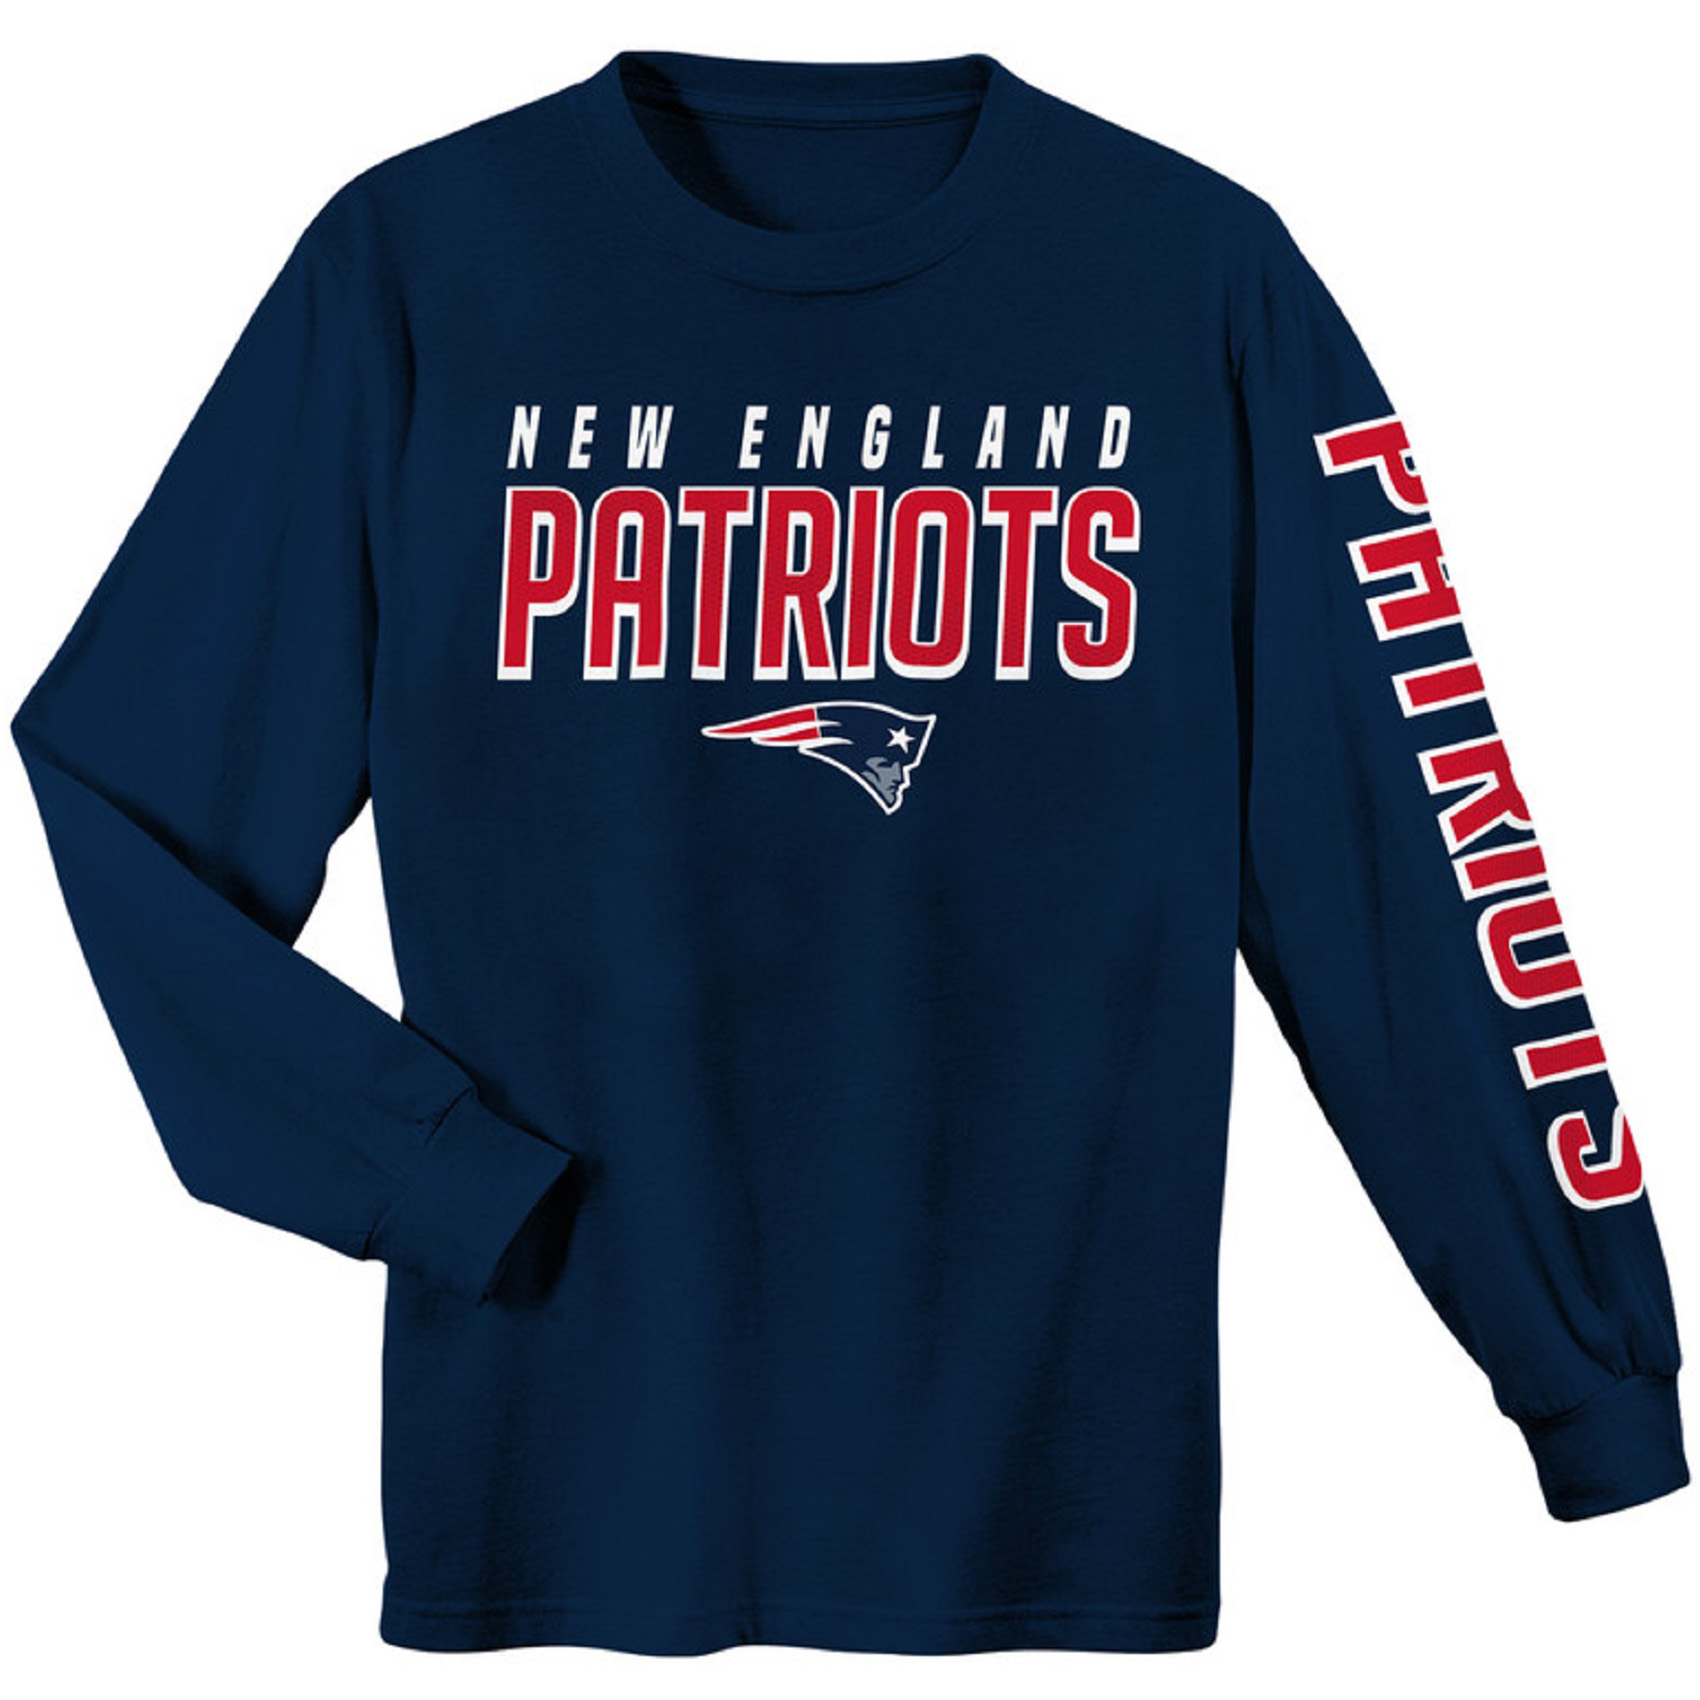 Youth Navy New England Patriots Sleeve Hit Long Sleeve T-Shirt